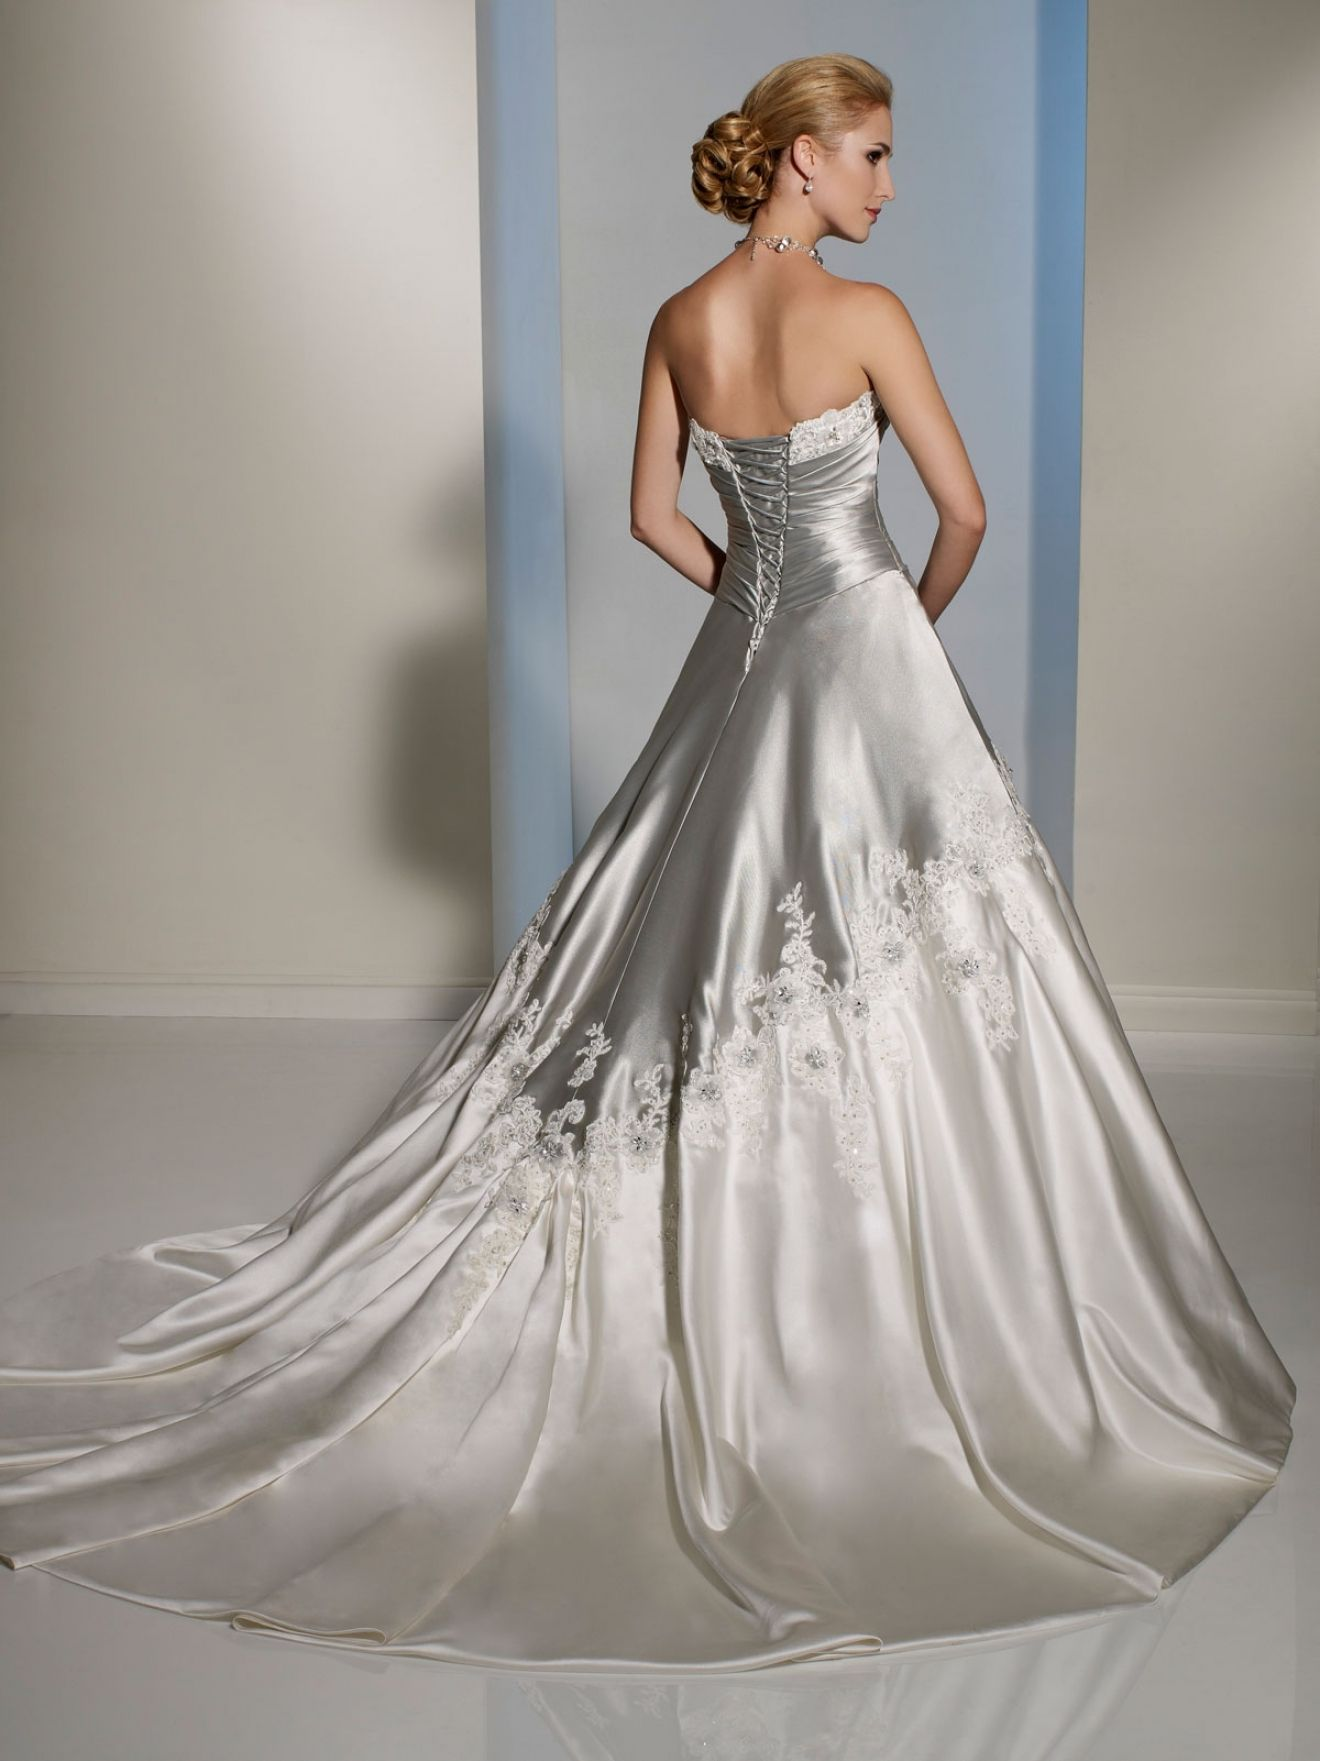 20 Most Beautiful Short White Wedding Dress Ideas For This Season Best Inspiration Colored Wedding Dresses Wedding Dresses Silver Wedding Dress [ 1761 x 1320 Pixel ]